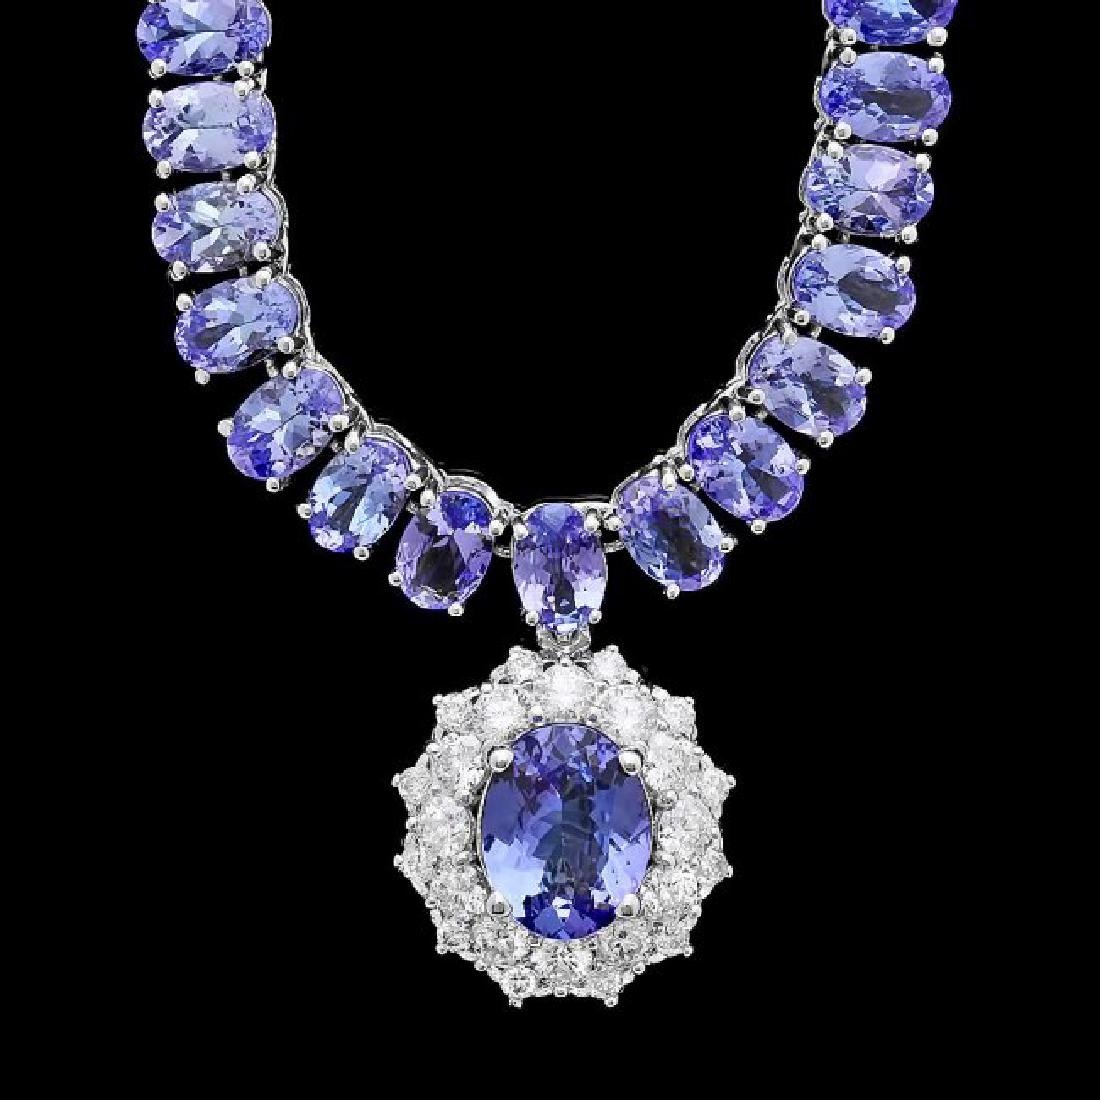 14k W Gold 45ct Tanzanite 1.35ct Diamond Necklace